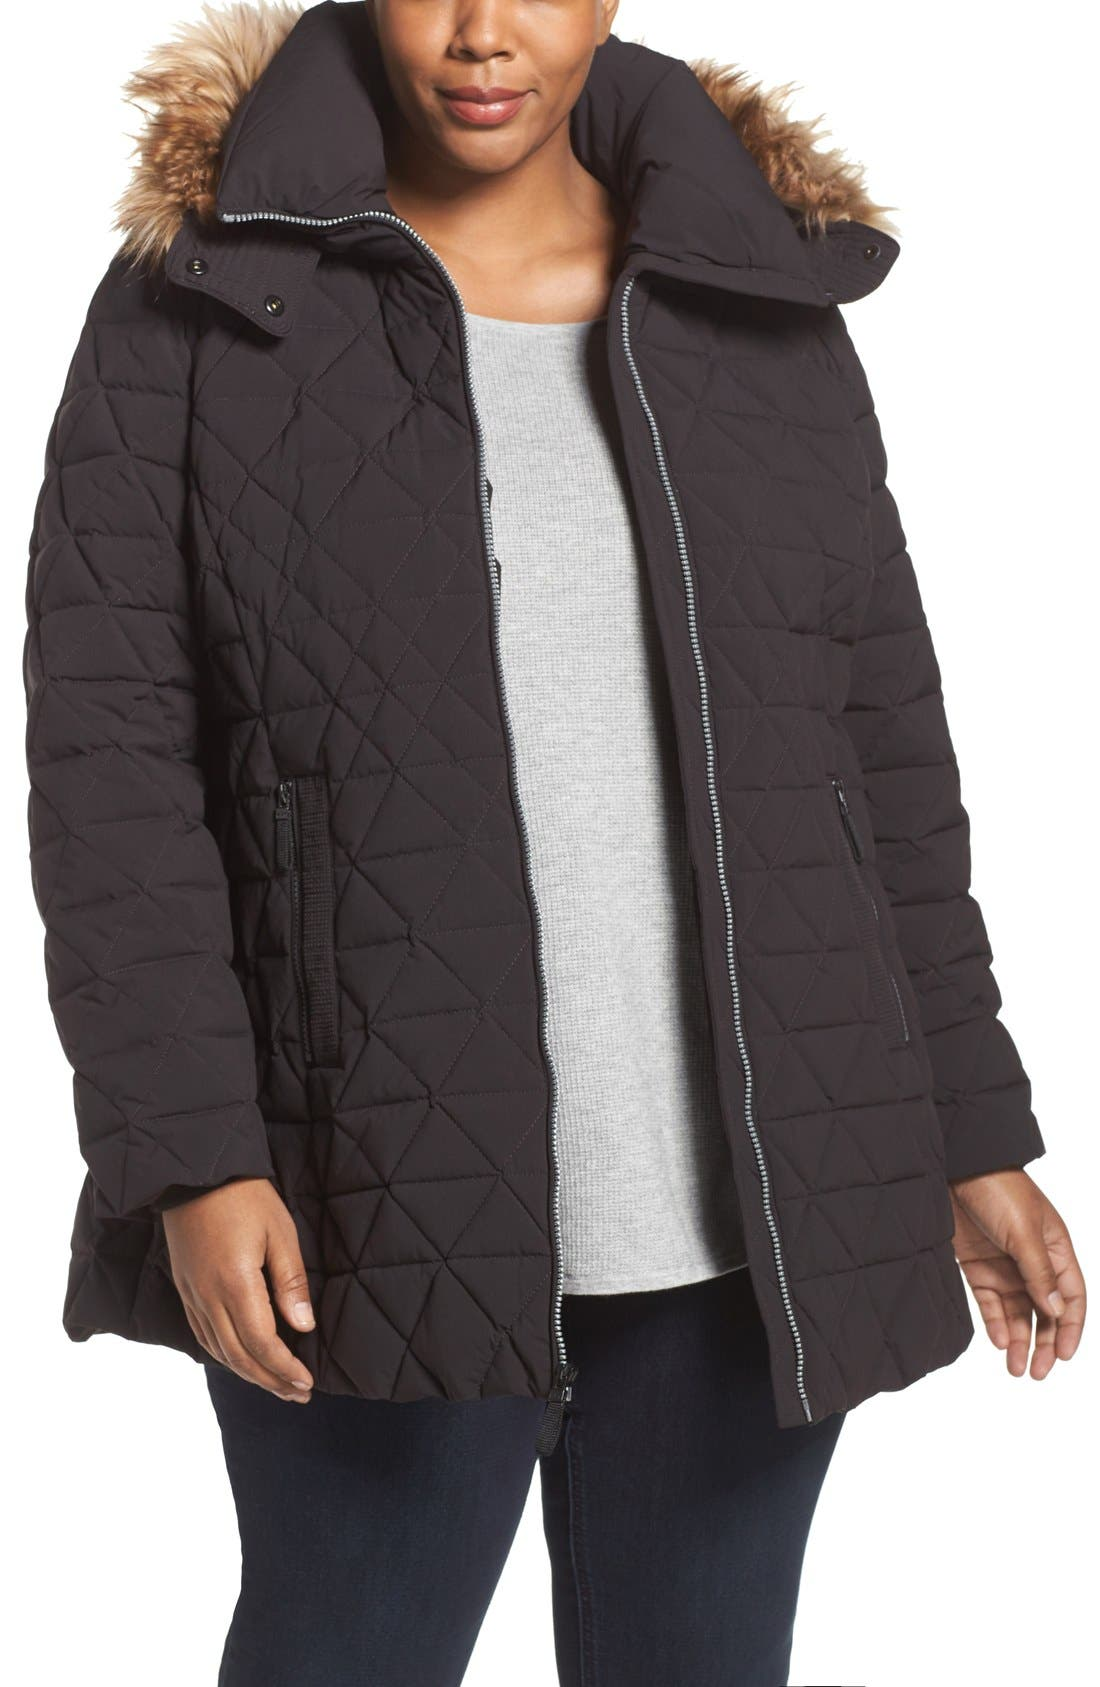 Alternate Image 1 Selected - Andrew Marc Down Jacket with Faux Fur Trim Hood (Plus Size)